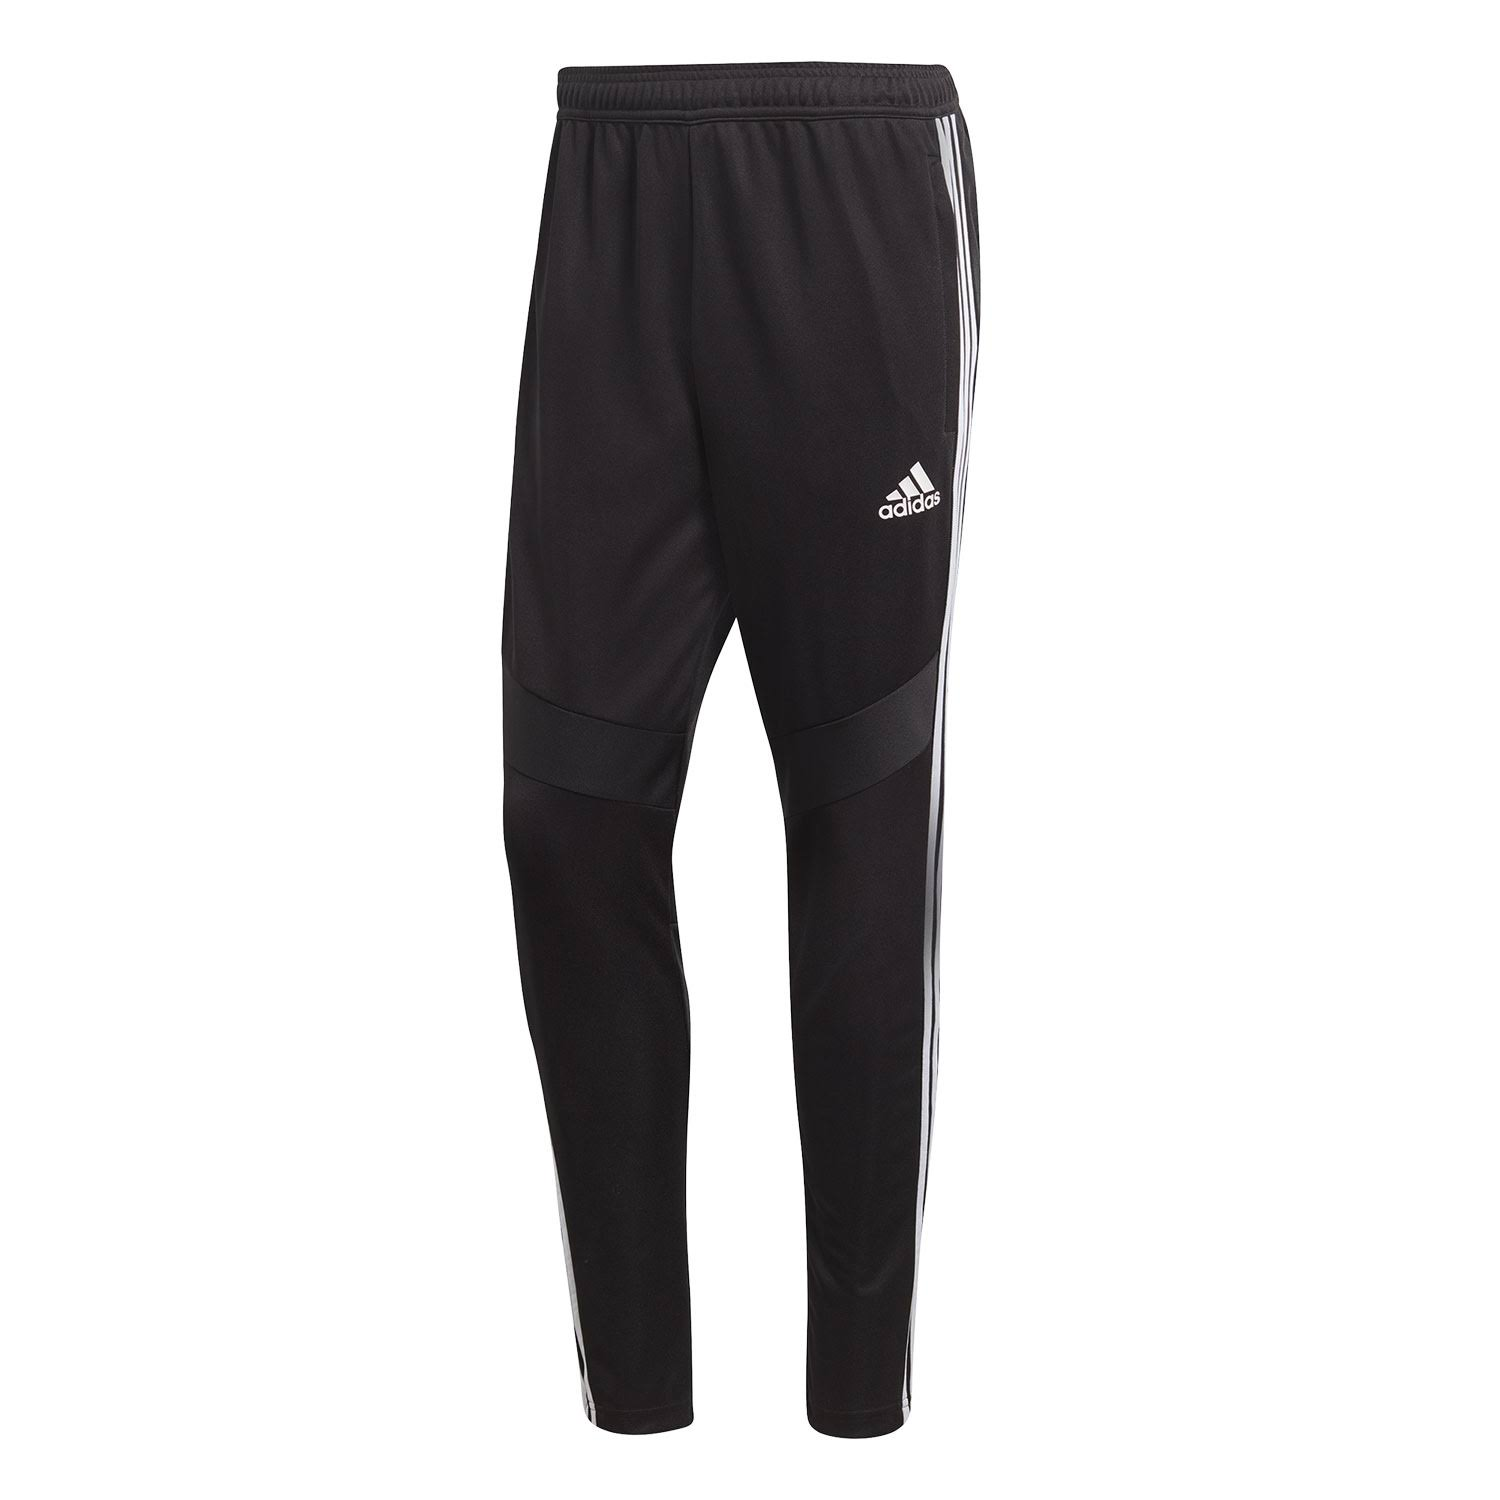 adidas Men's Tiro19 Training Pants - Black/White, Small